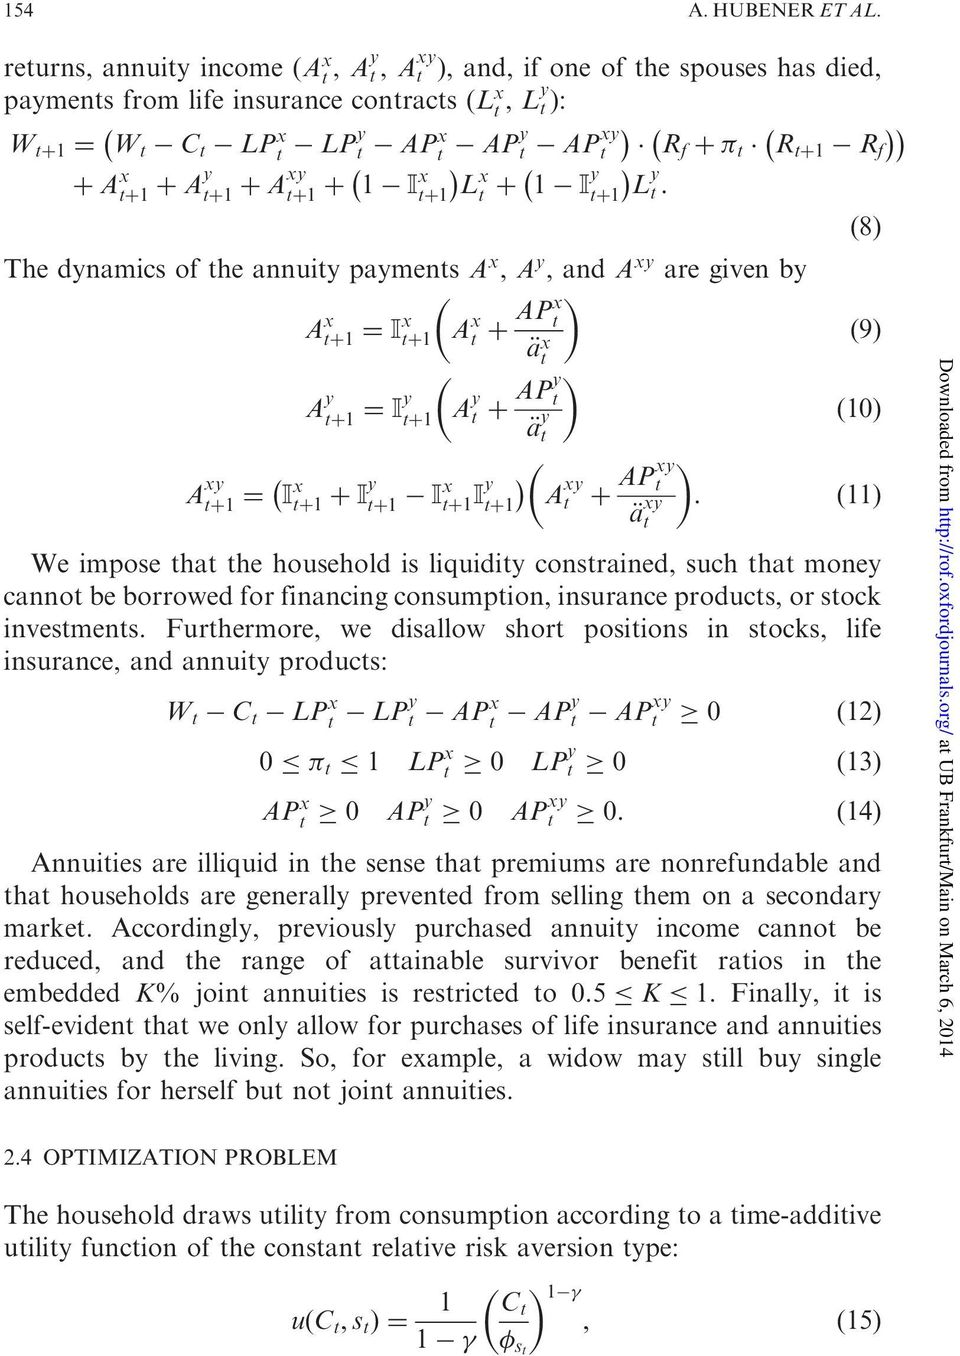 tþ1 R f þ A x tþ1 þ Ay tþ1 þ Axy tþ1 þ 1 Ix tþ1 L x t þ 1 I y tþ1 L y t : ð8þ The dynamics of the annuity payments A x, A y, and A xy are given by A x tþ1 ¼ Ix tþ1 A x t þ APx t a x ð9þ t A y tþ1 ¼